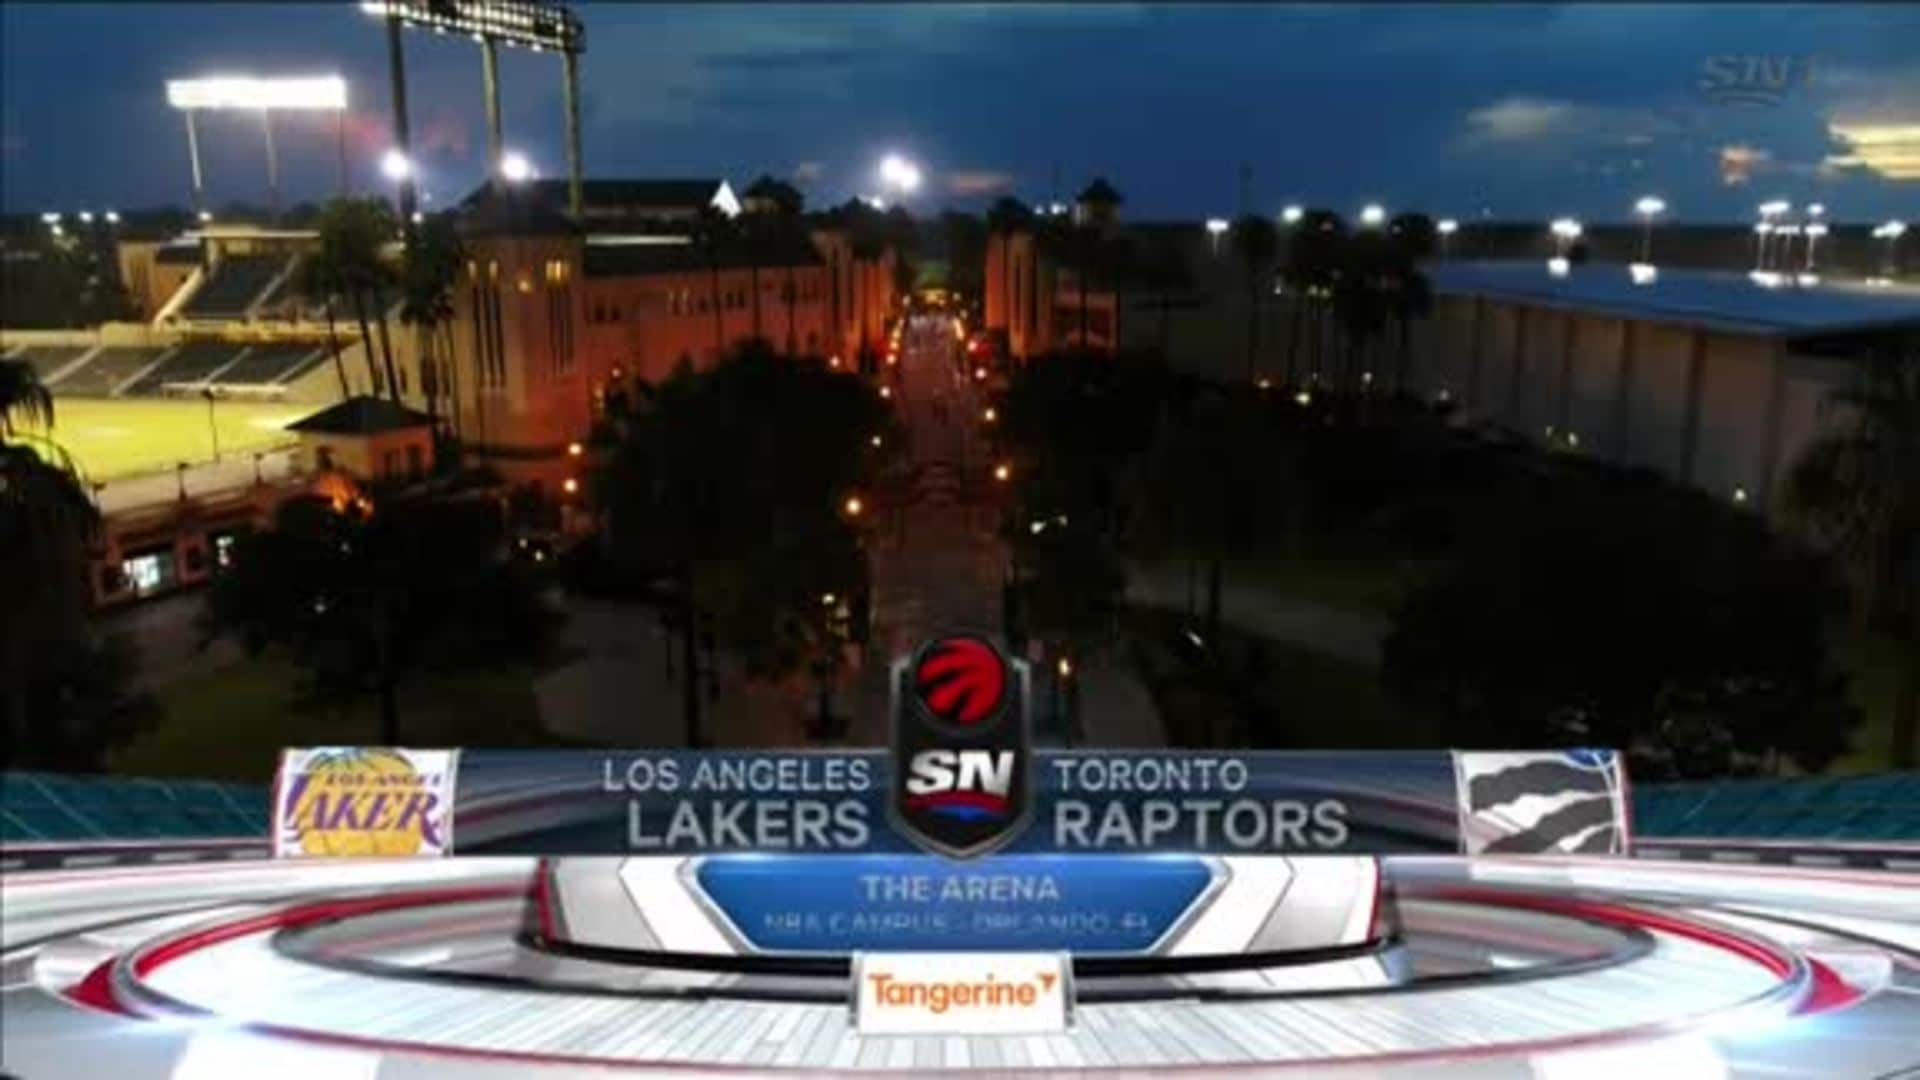 Game Highlights: Raptors vs. Lakers - August 1, 2020